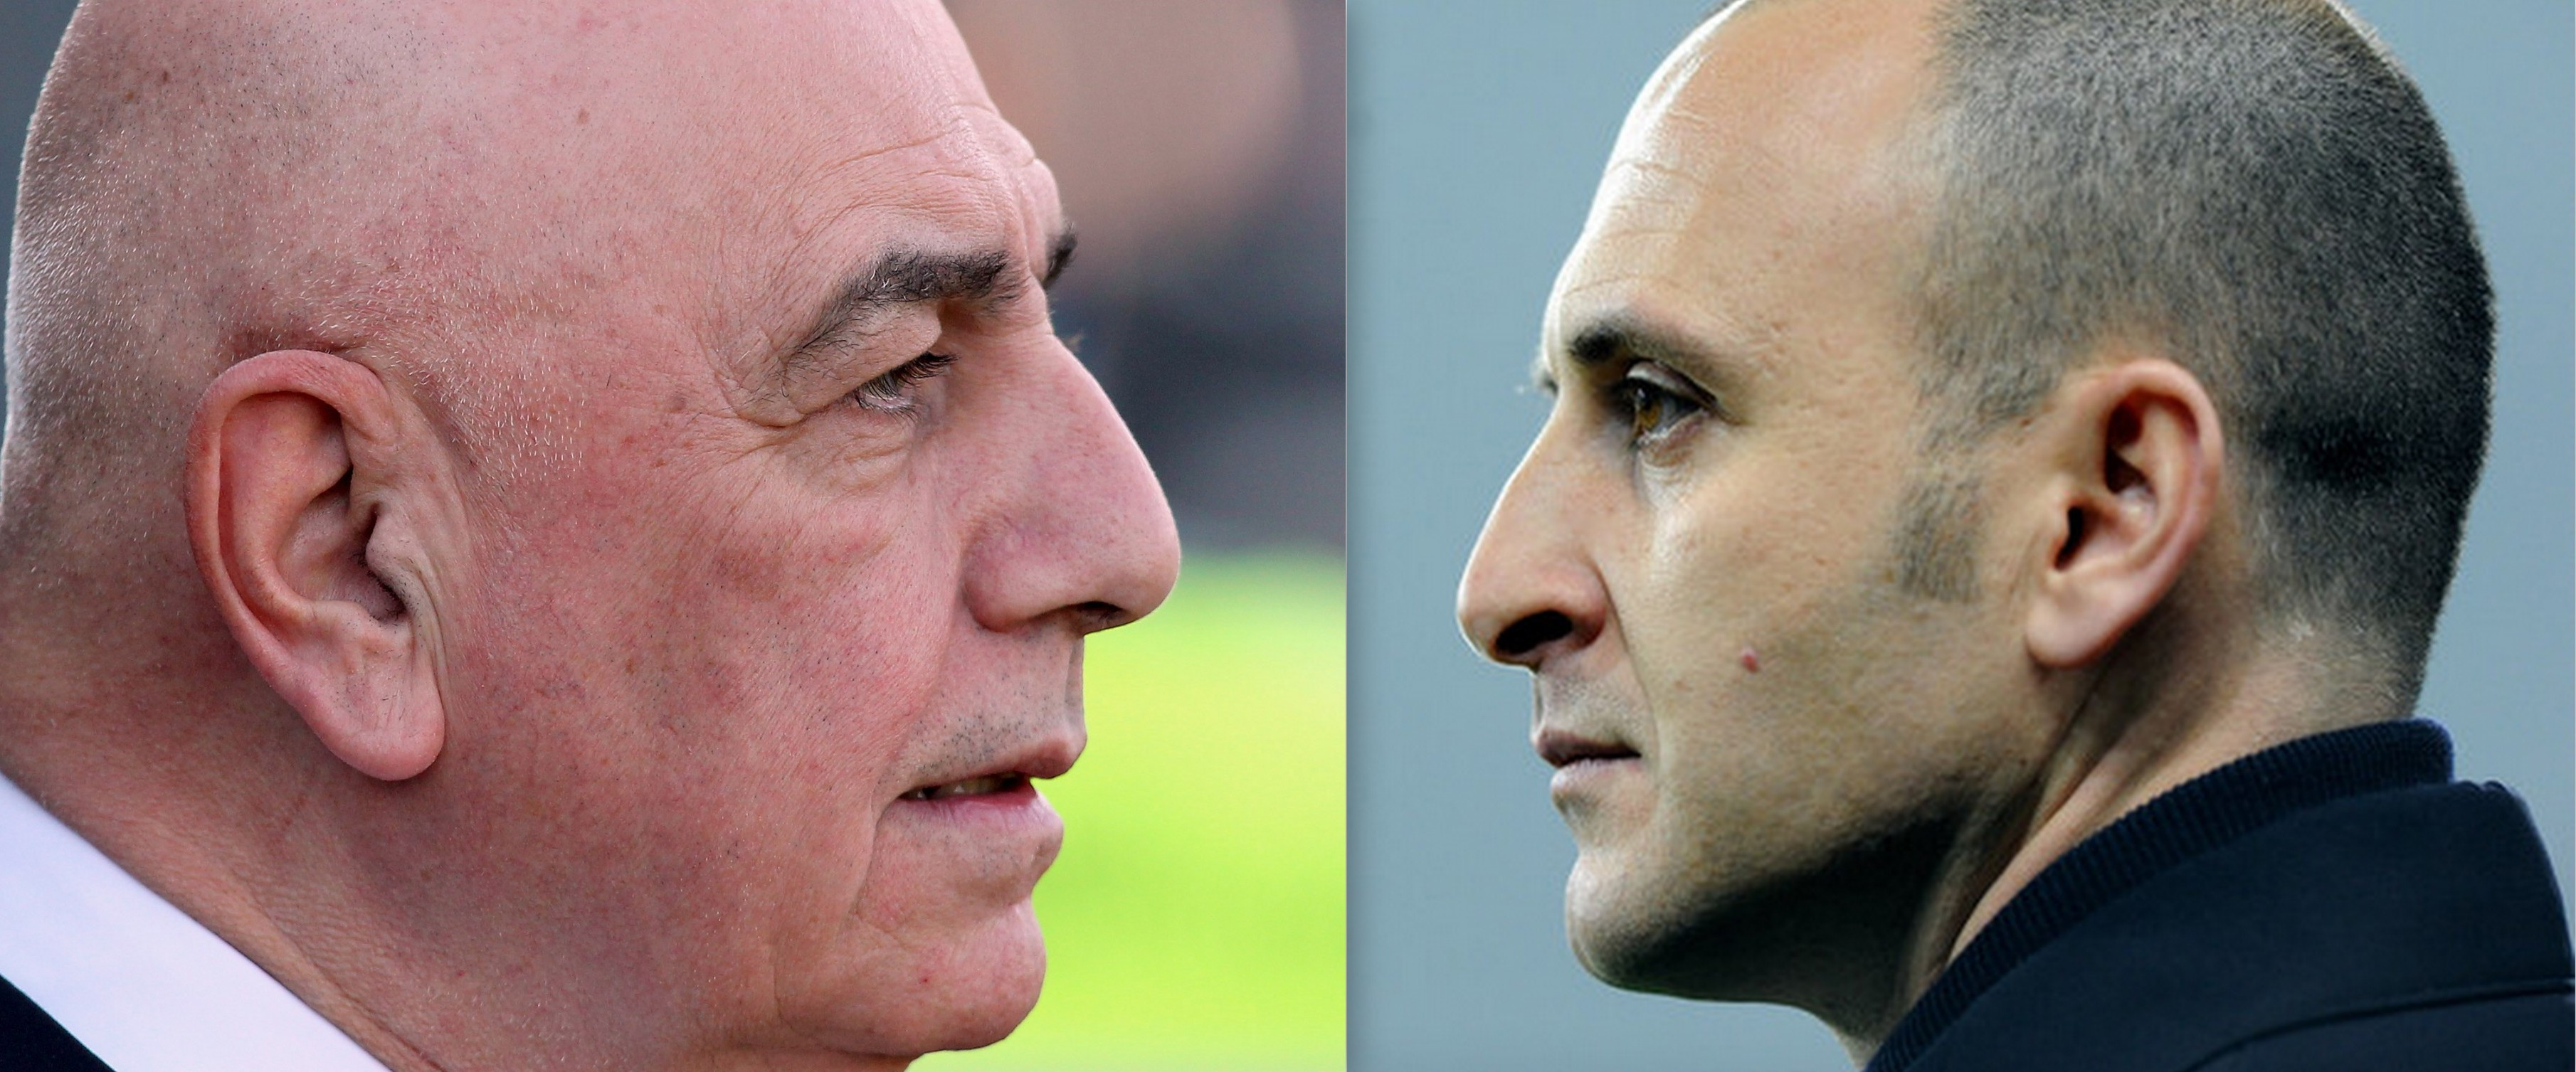 Galliani e Ausilio a confronto